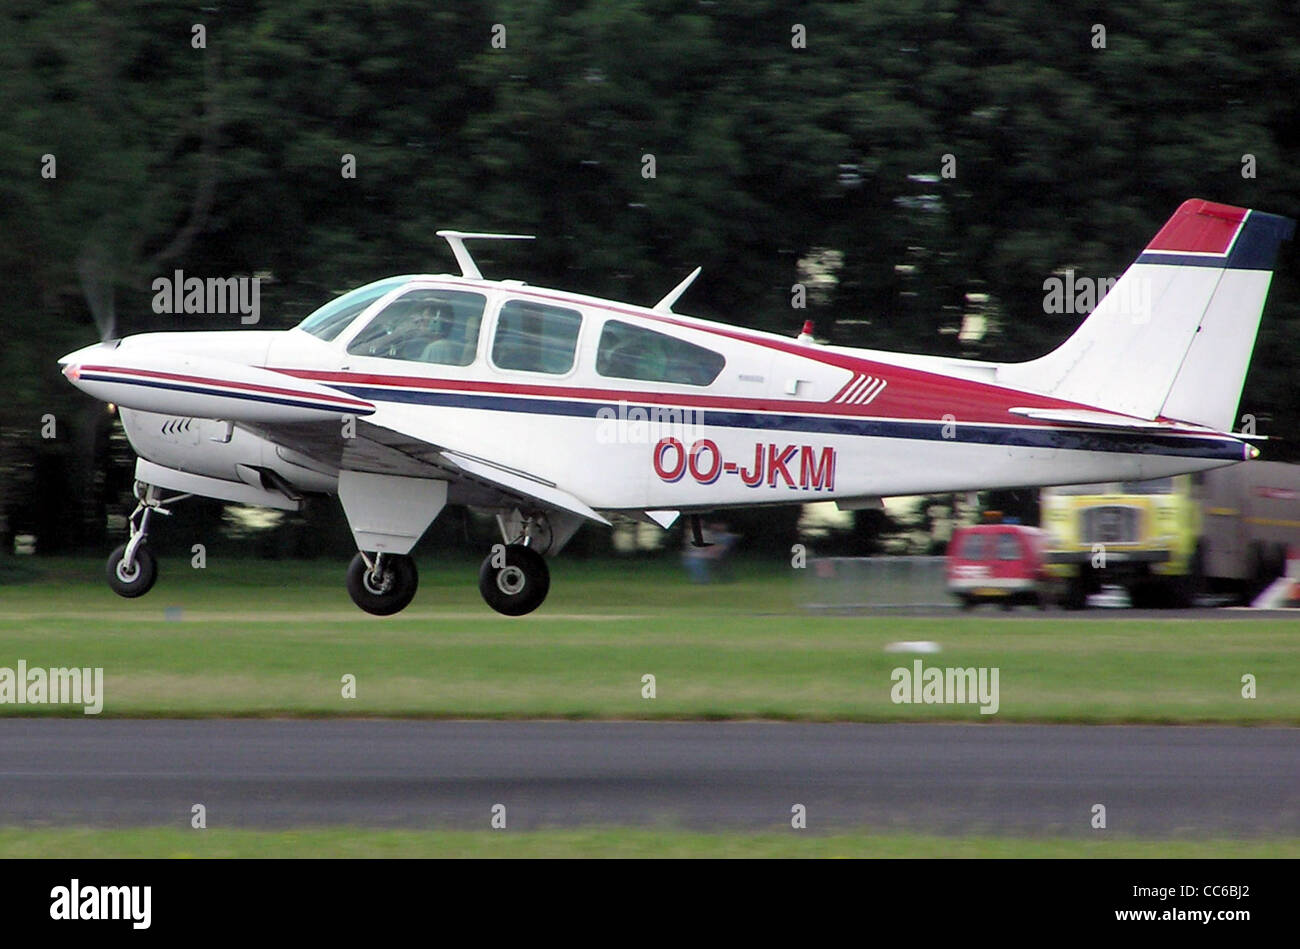 Beechcraft Bonanza Be33 (Belgian registration OO-JKM) taking off at Kemble Airfield, Gloucestershire, England - Stock Image